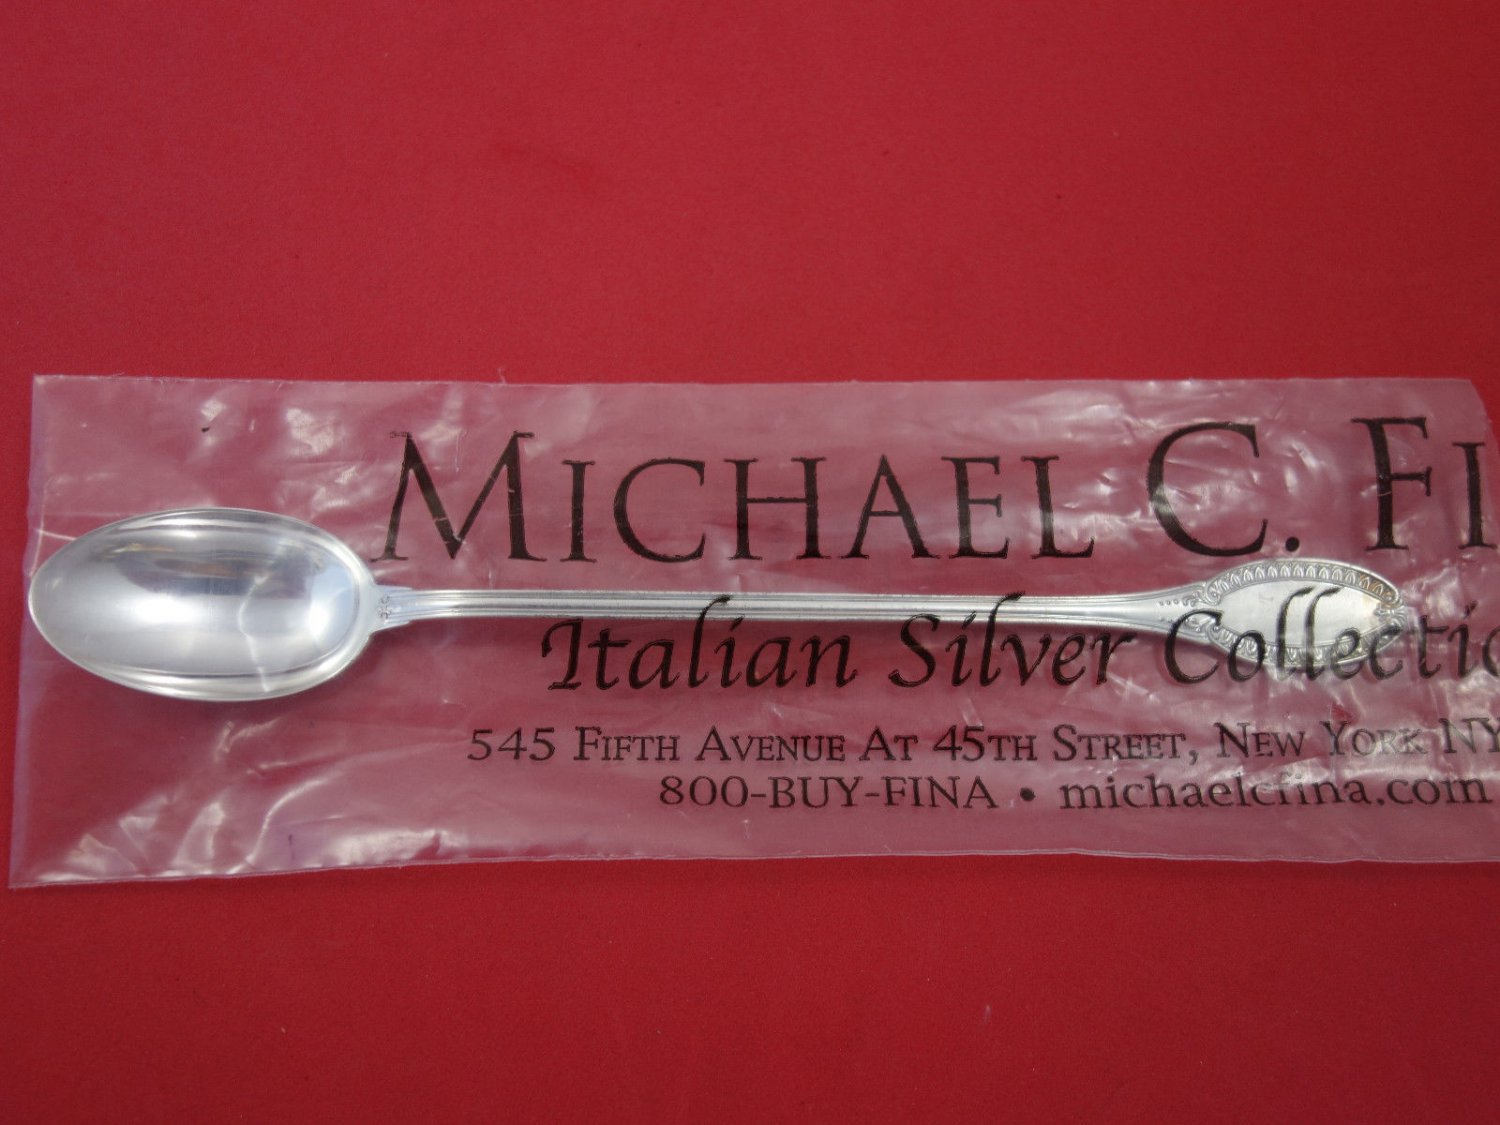 "Impero By Calegaro Sterling Silver Iced Tea Spoon 7 1/2"" New"